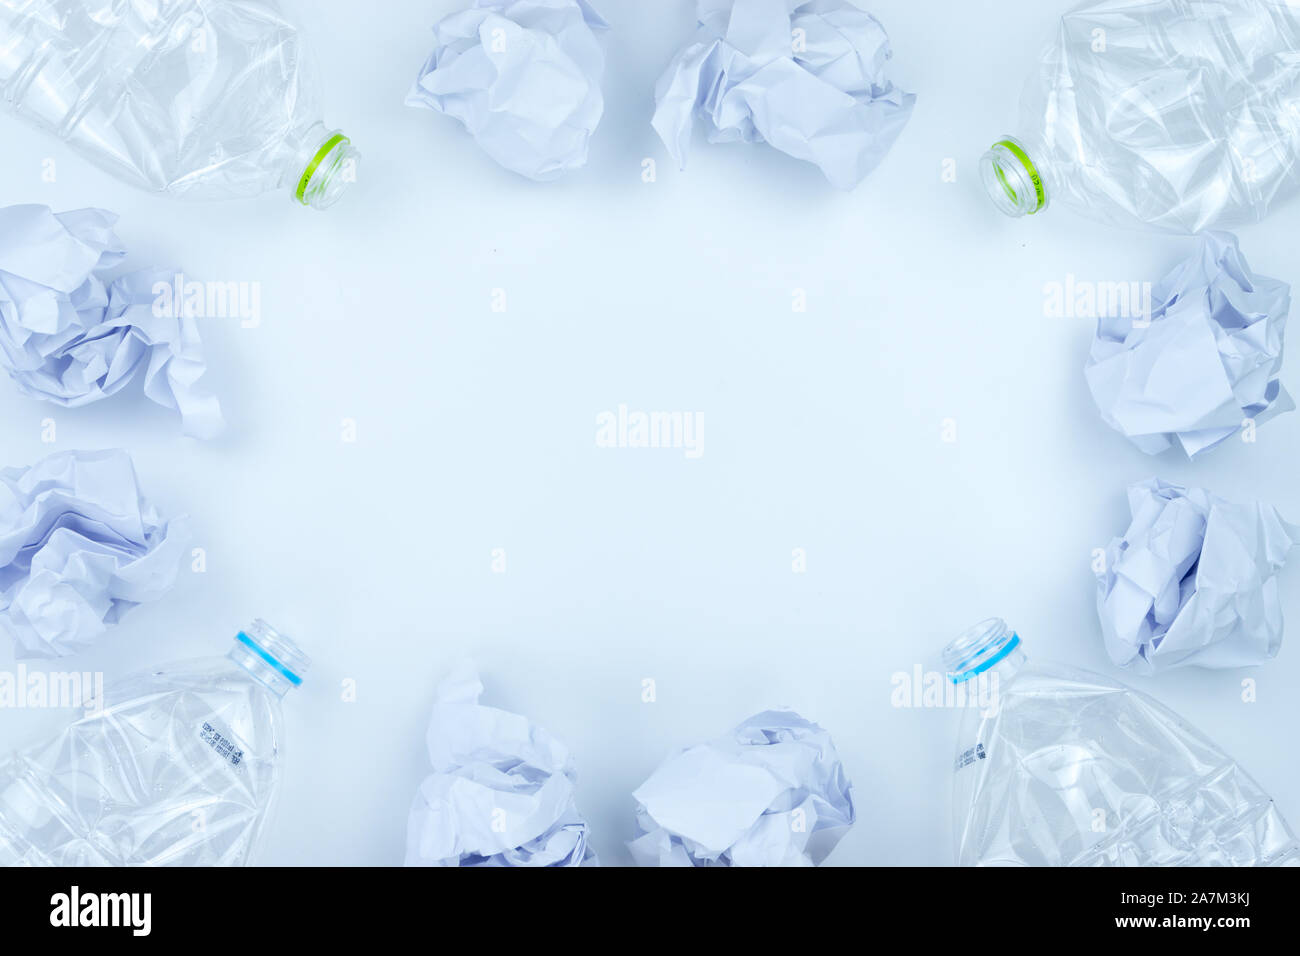 Recycling. The frame of used plastic bottle and crumpled paper on white background with copy space. Recycle and reuse concept Stock Photo